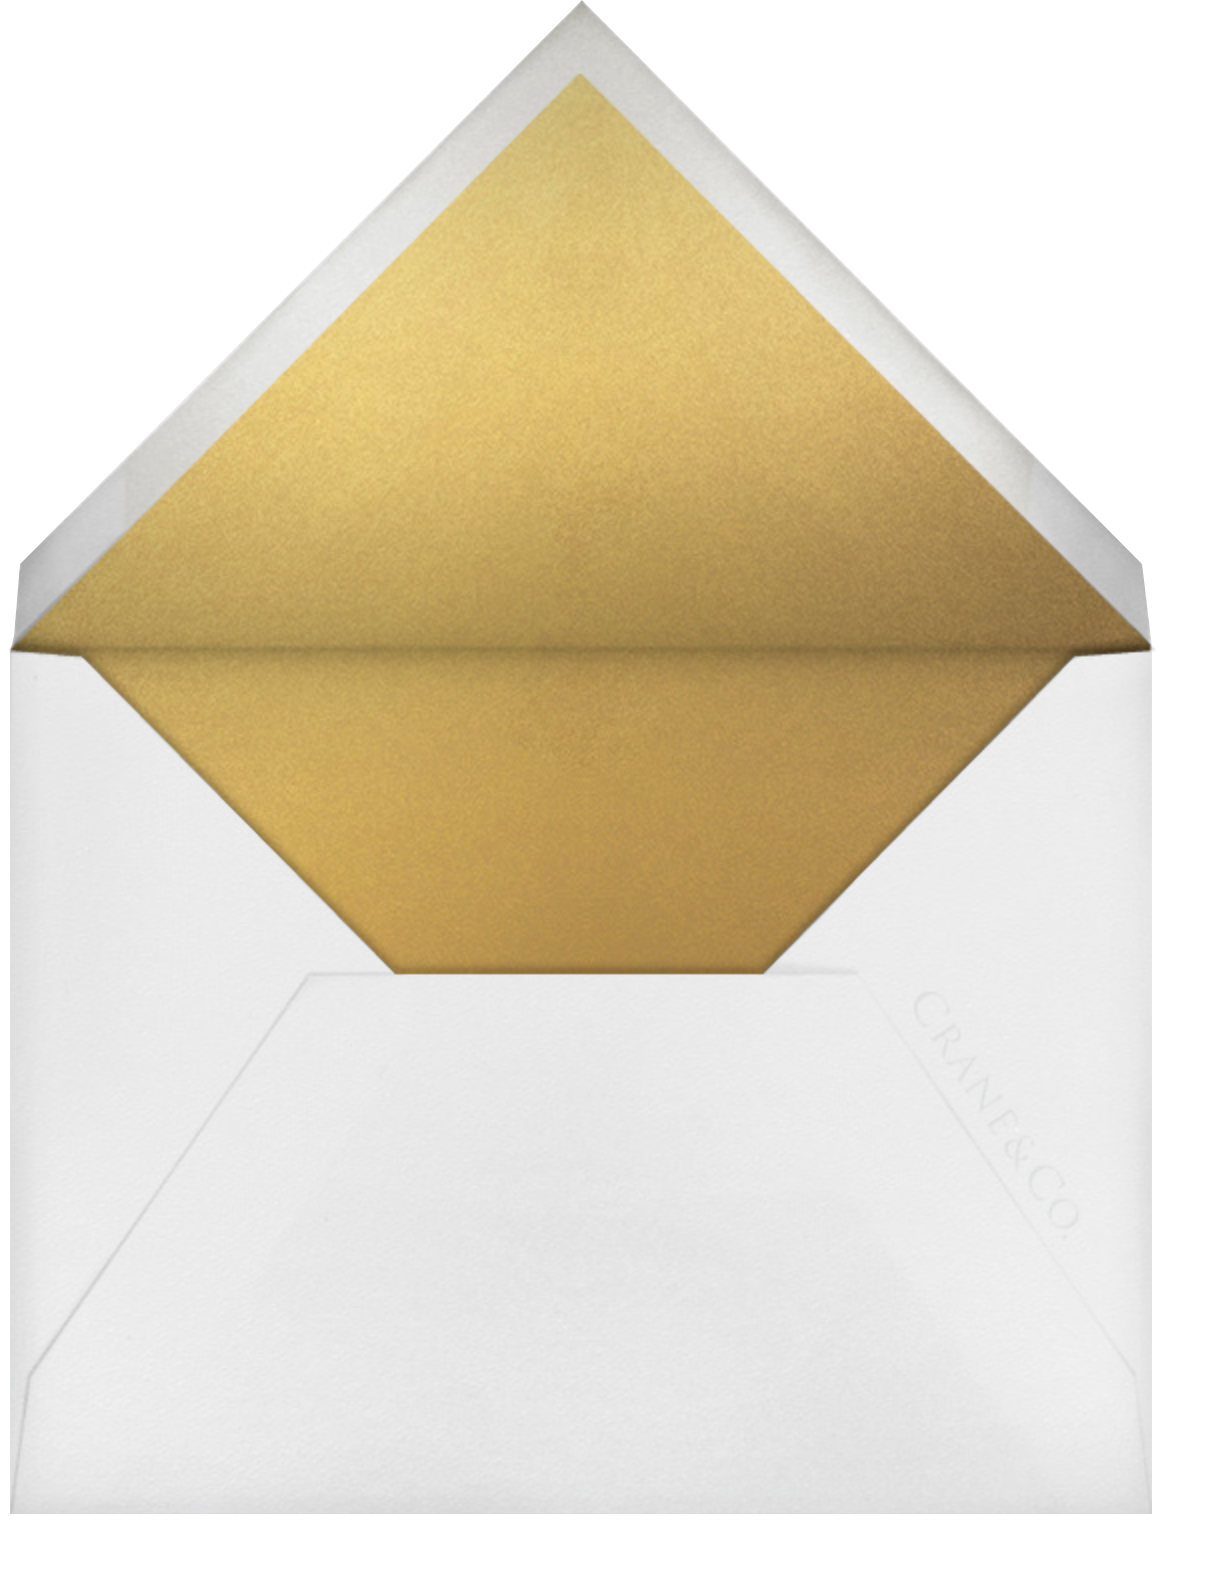 Croquet - Gold - Paperless Post - Gold and metallic - envelope back